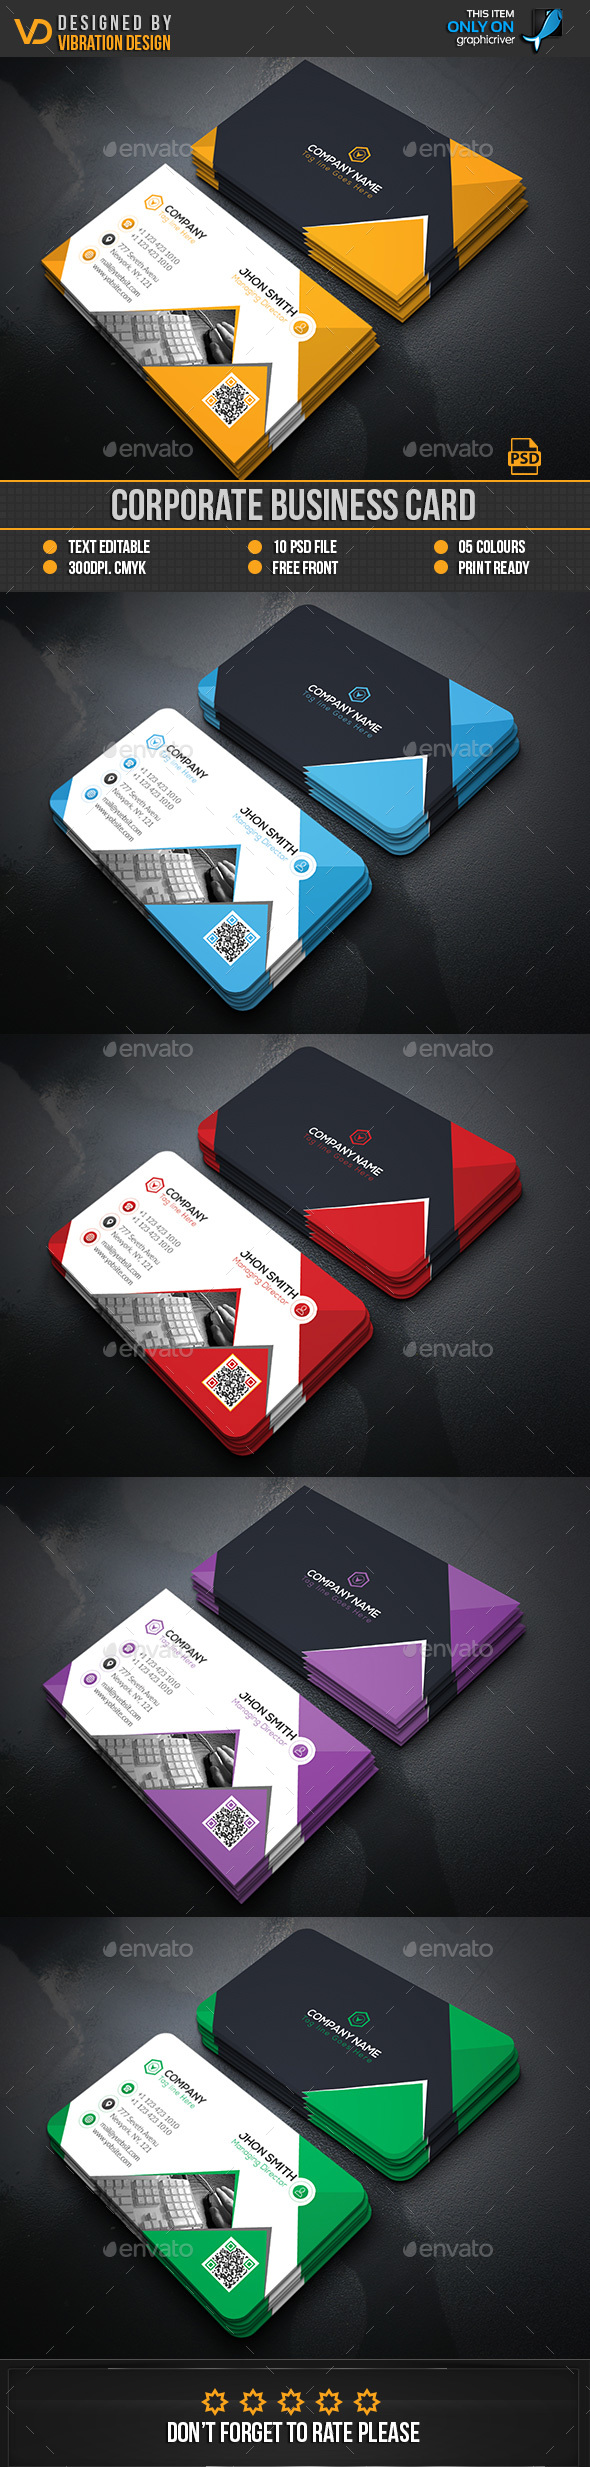 Corporate Business Card Template PSD. Download here: https://graphicriver.net/item/corporate-business-card/17409416?ref=ksioks